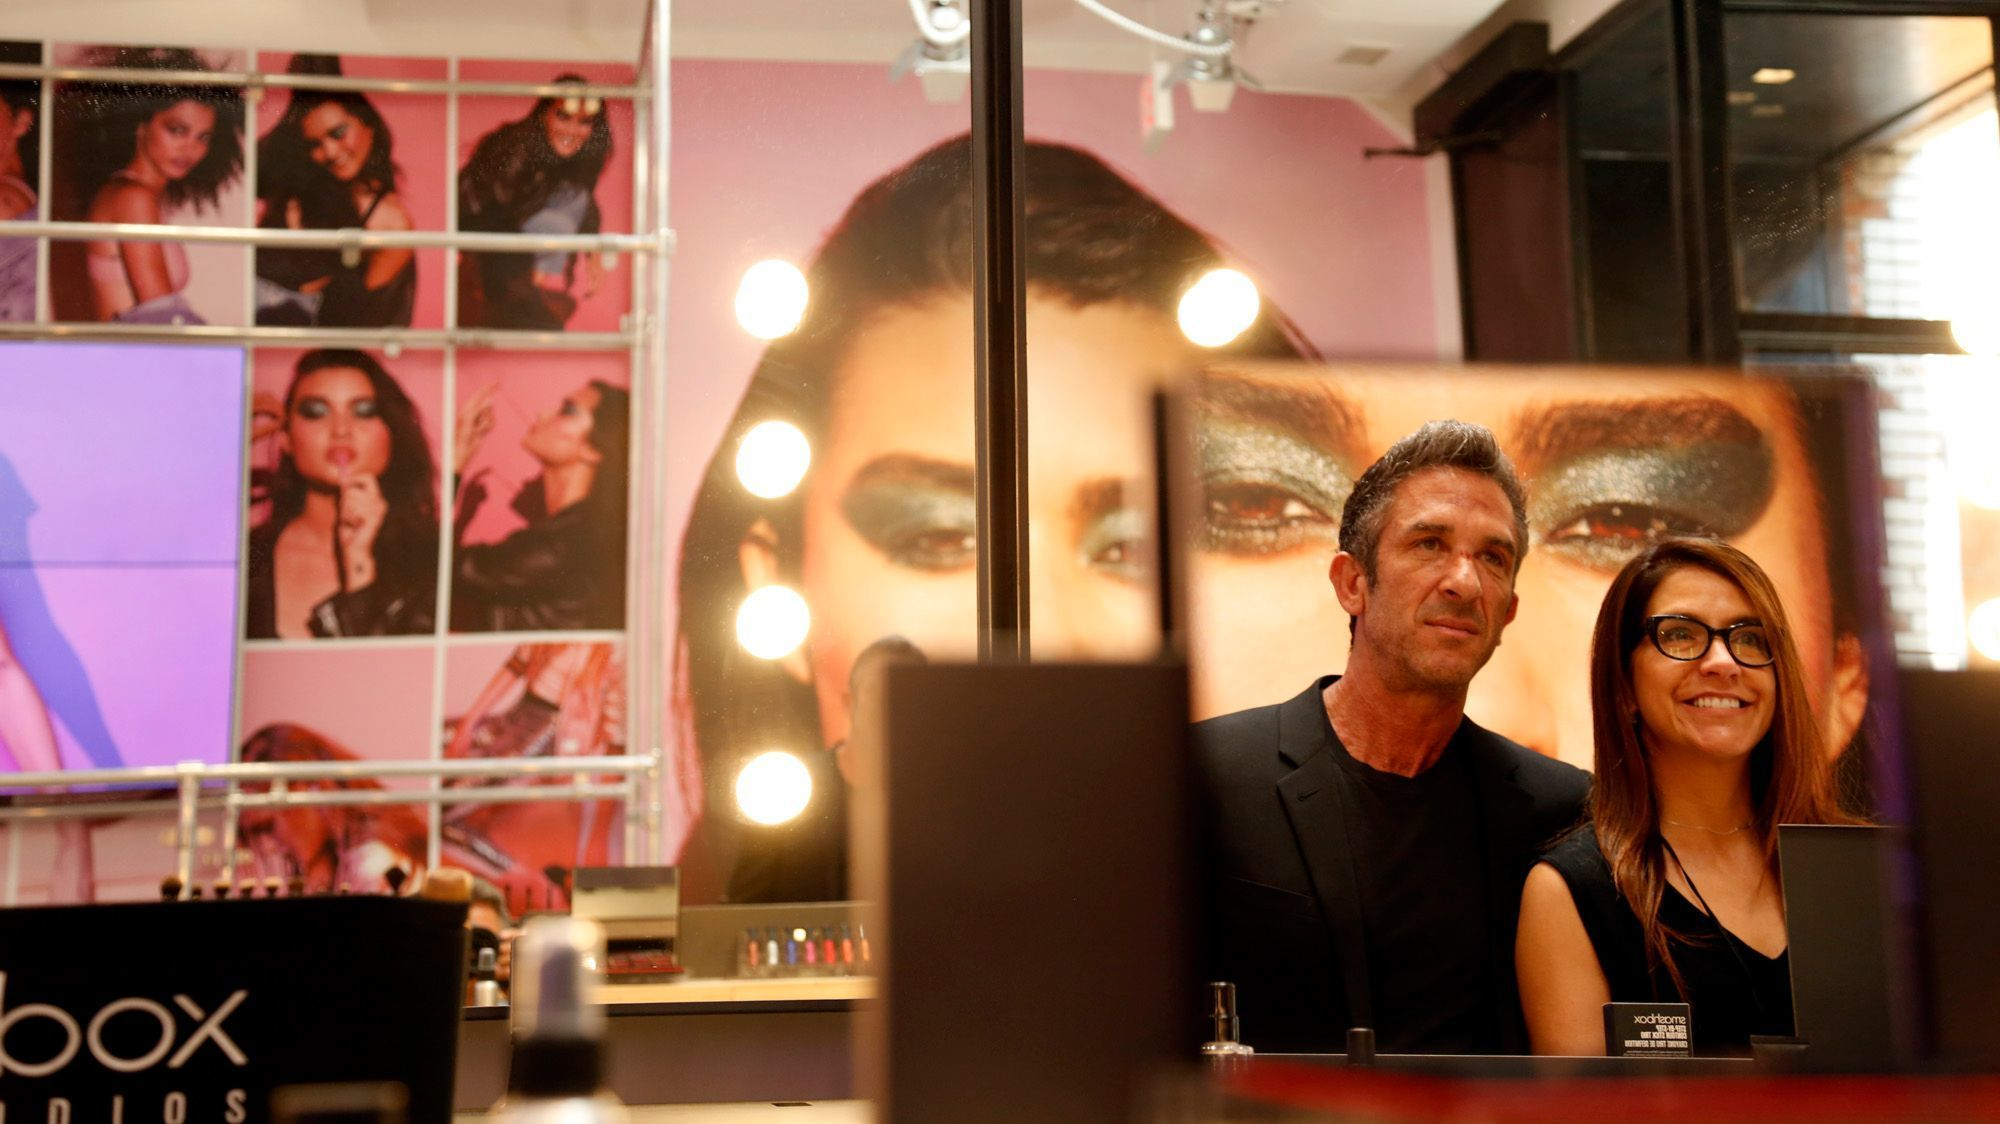 Reflected in a makeup mirror are photographer Davis Factor, Smashbox co-founder and senior vice president of global creative, and Beth DiNardo, global brand president of Smashbox, who stand inside their new Smashbox store on Abbott Kinney Boulevard in Venice.